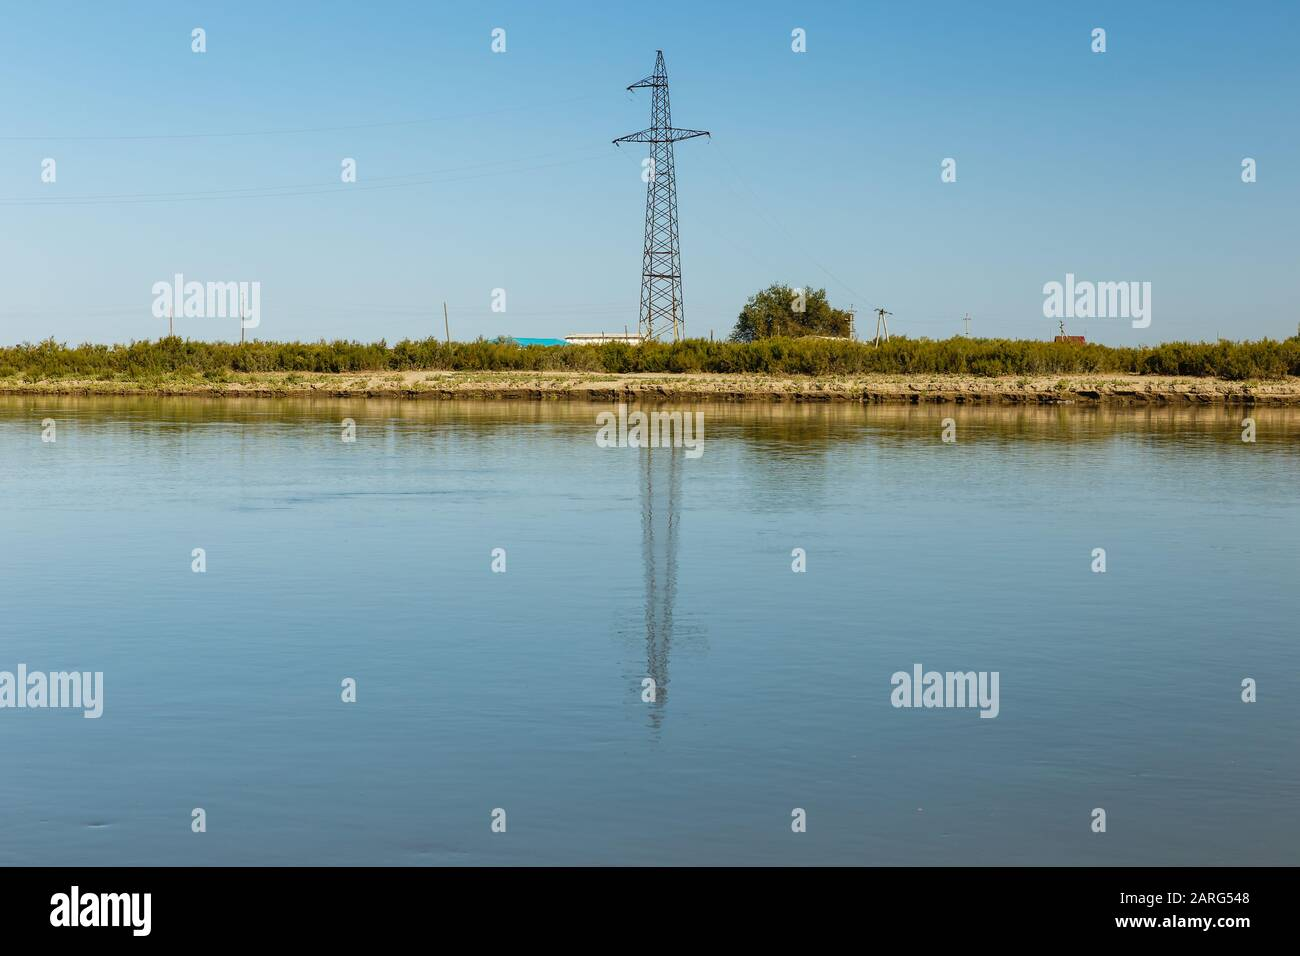 power line pylon stands on the banks of the Syr Darya river, reflected in the water, Kazakhstan. Power line crosses the river Stock Photo